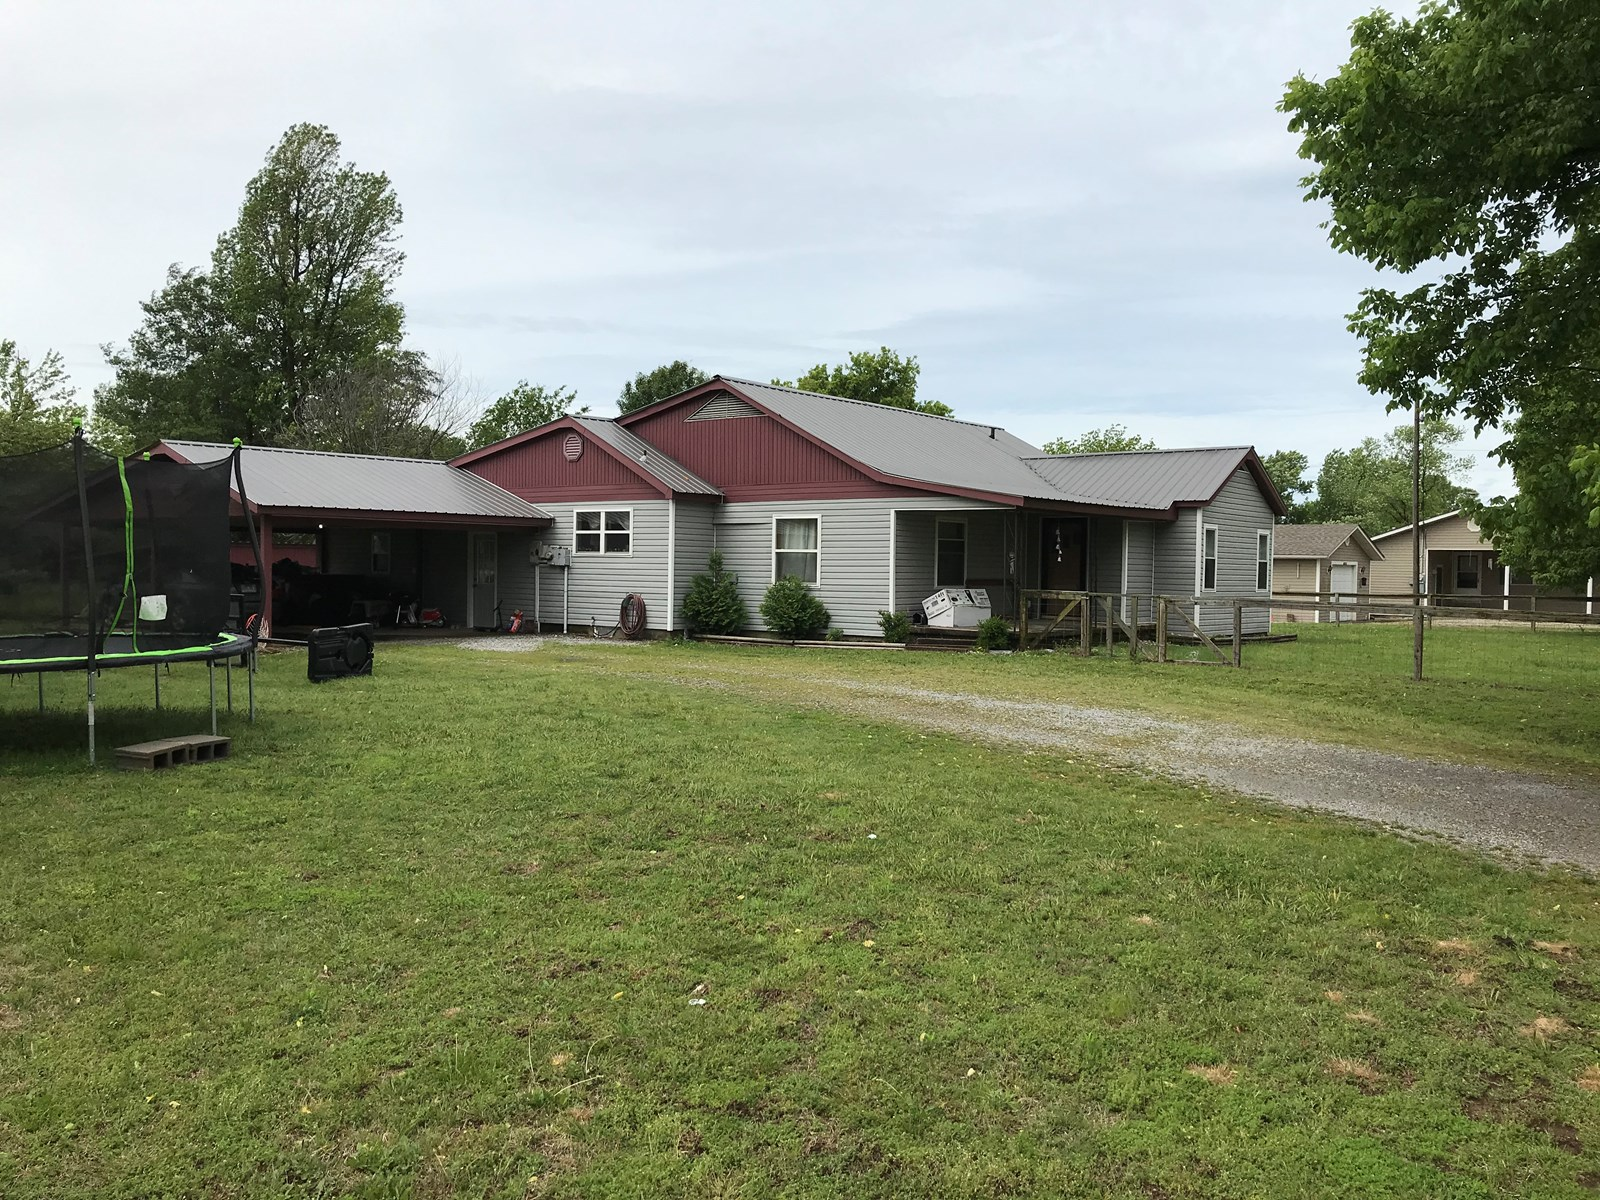 Home near town Pocahontas, AR Affordable and spacious home